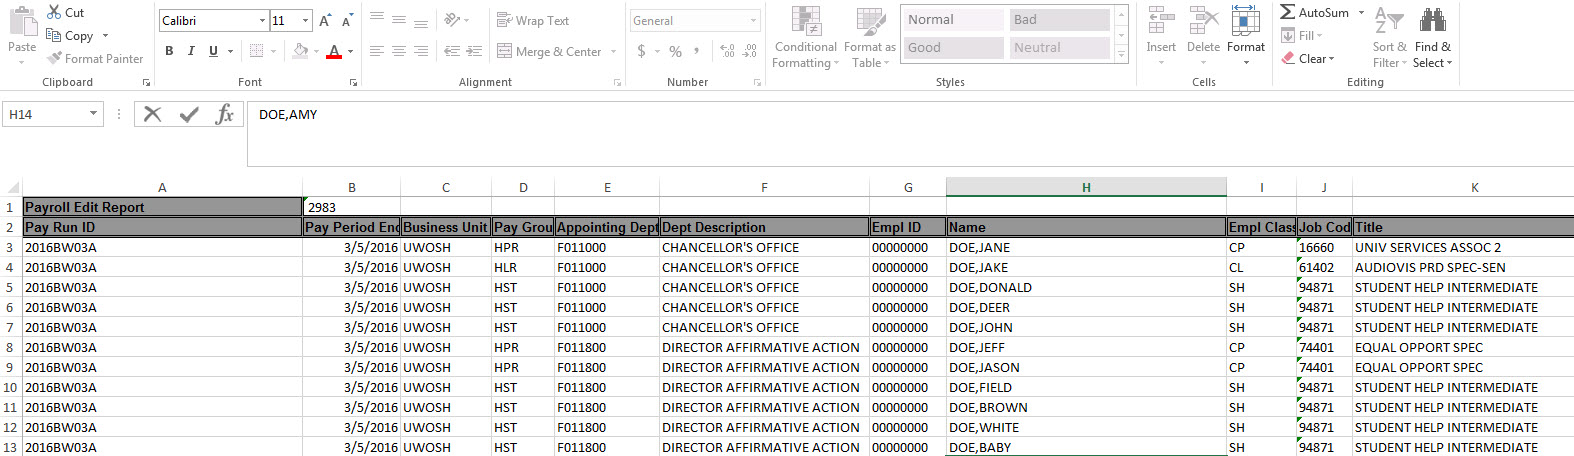 9.2 payroll edit report excel